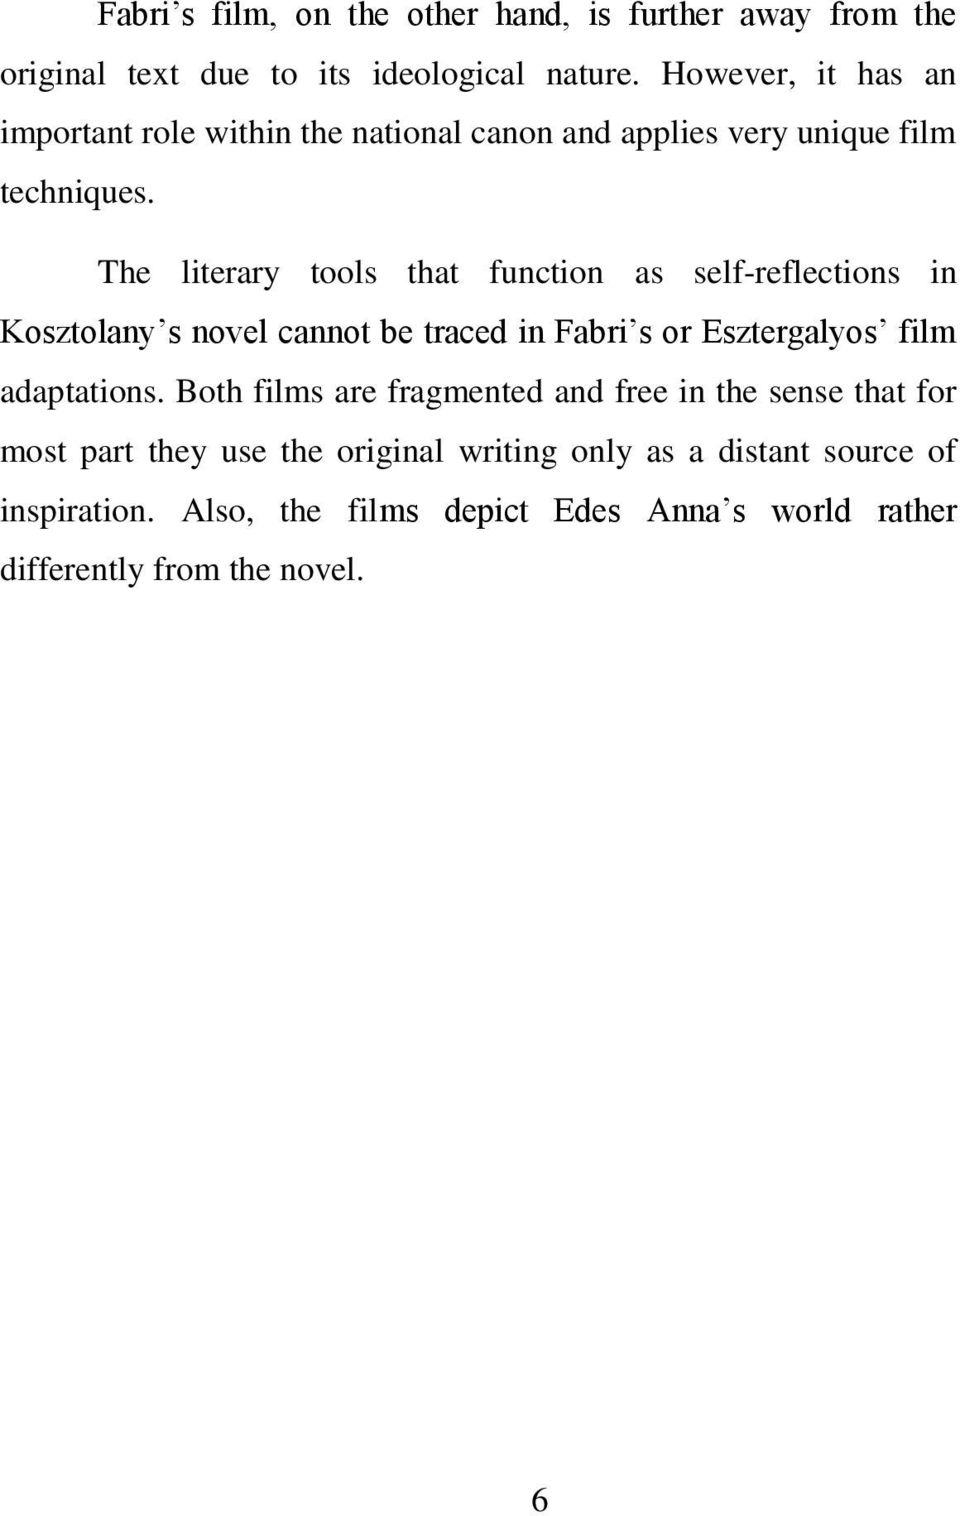 The literary tools that function as self-reflections in Kosztolany s novel cannot be traced in Fabri s or Esztergalyos film adaptations.